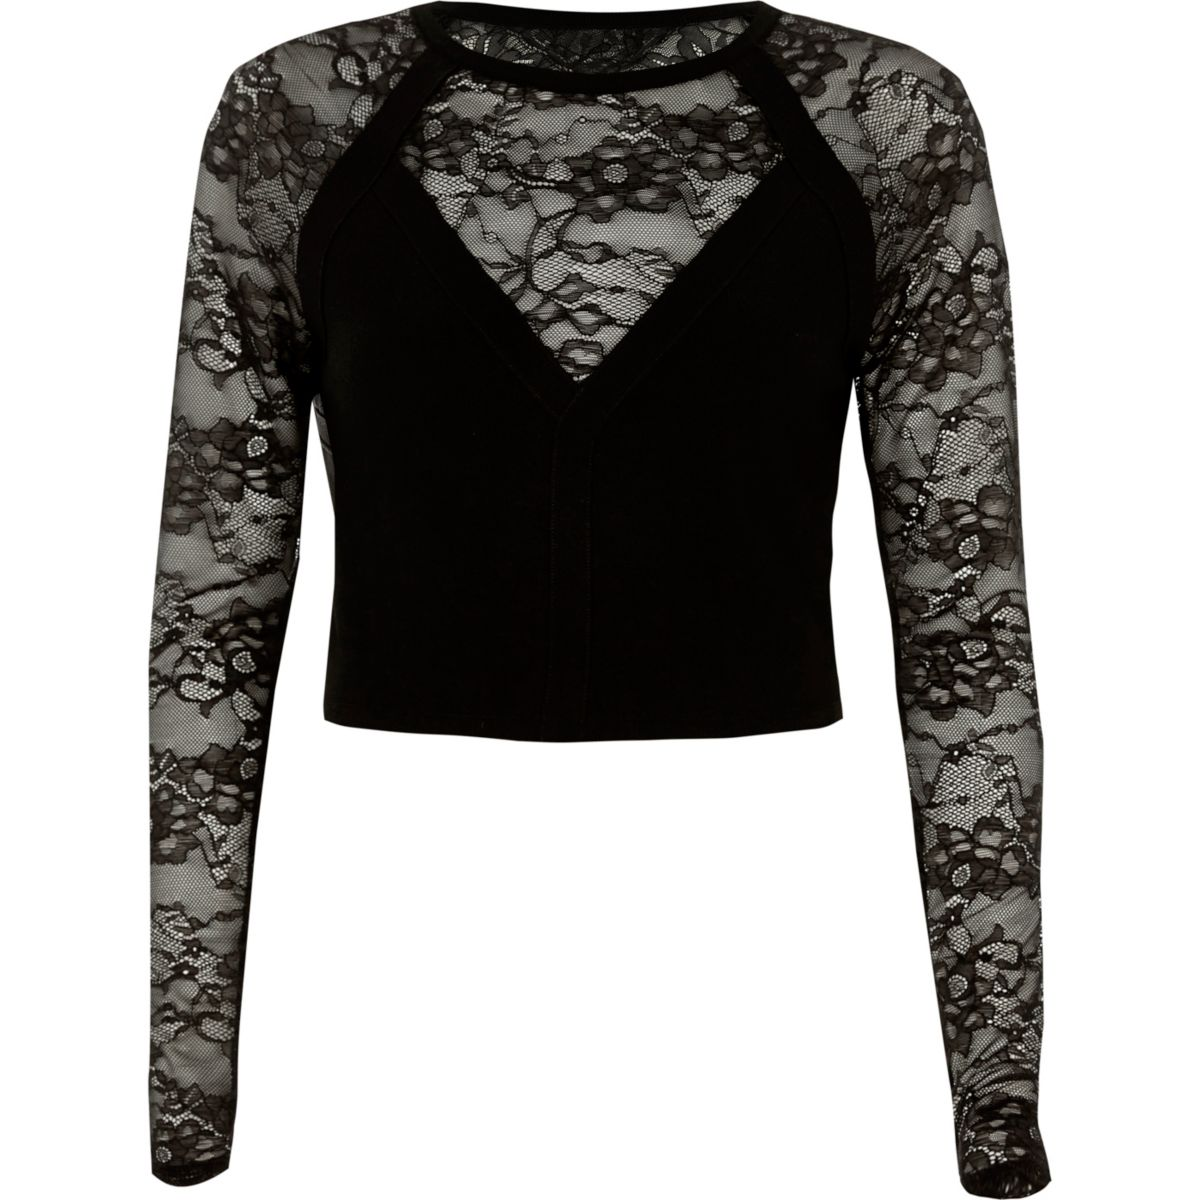 Black lace insert long sleeve fitted top